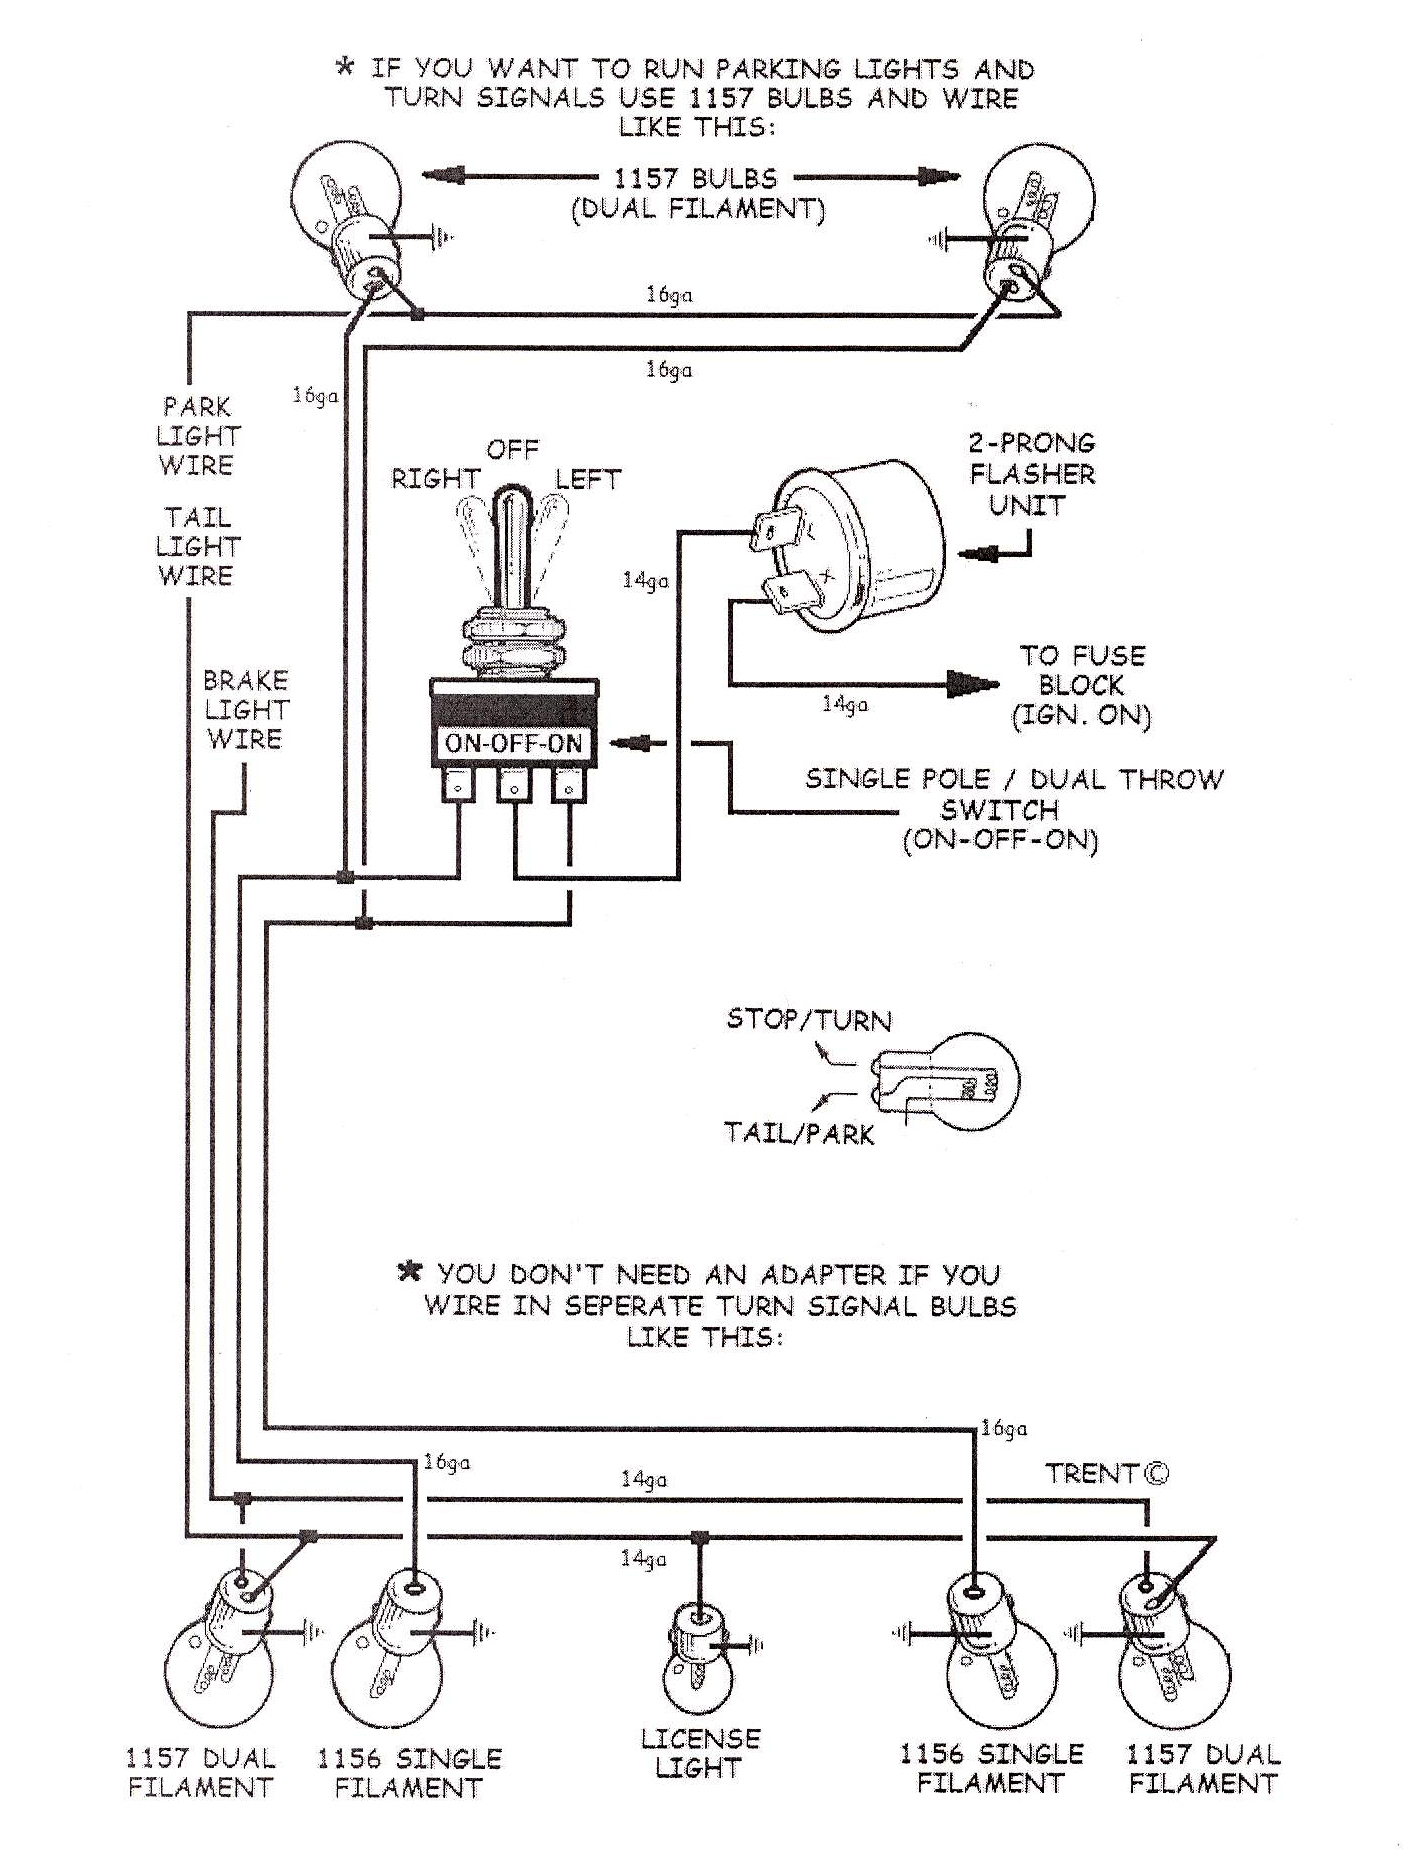 turnsignalwiringdiagram tech tips 1969 mustang steering column wiring diagram at cos-gaming.co